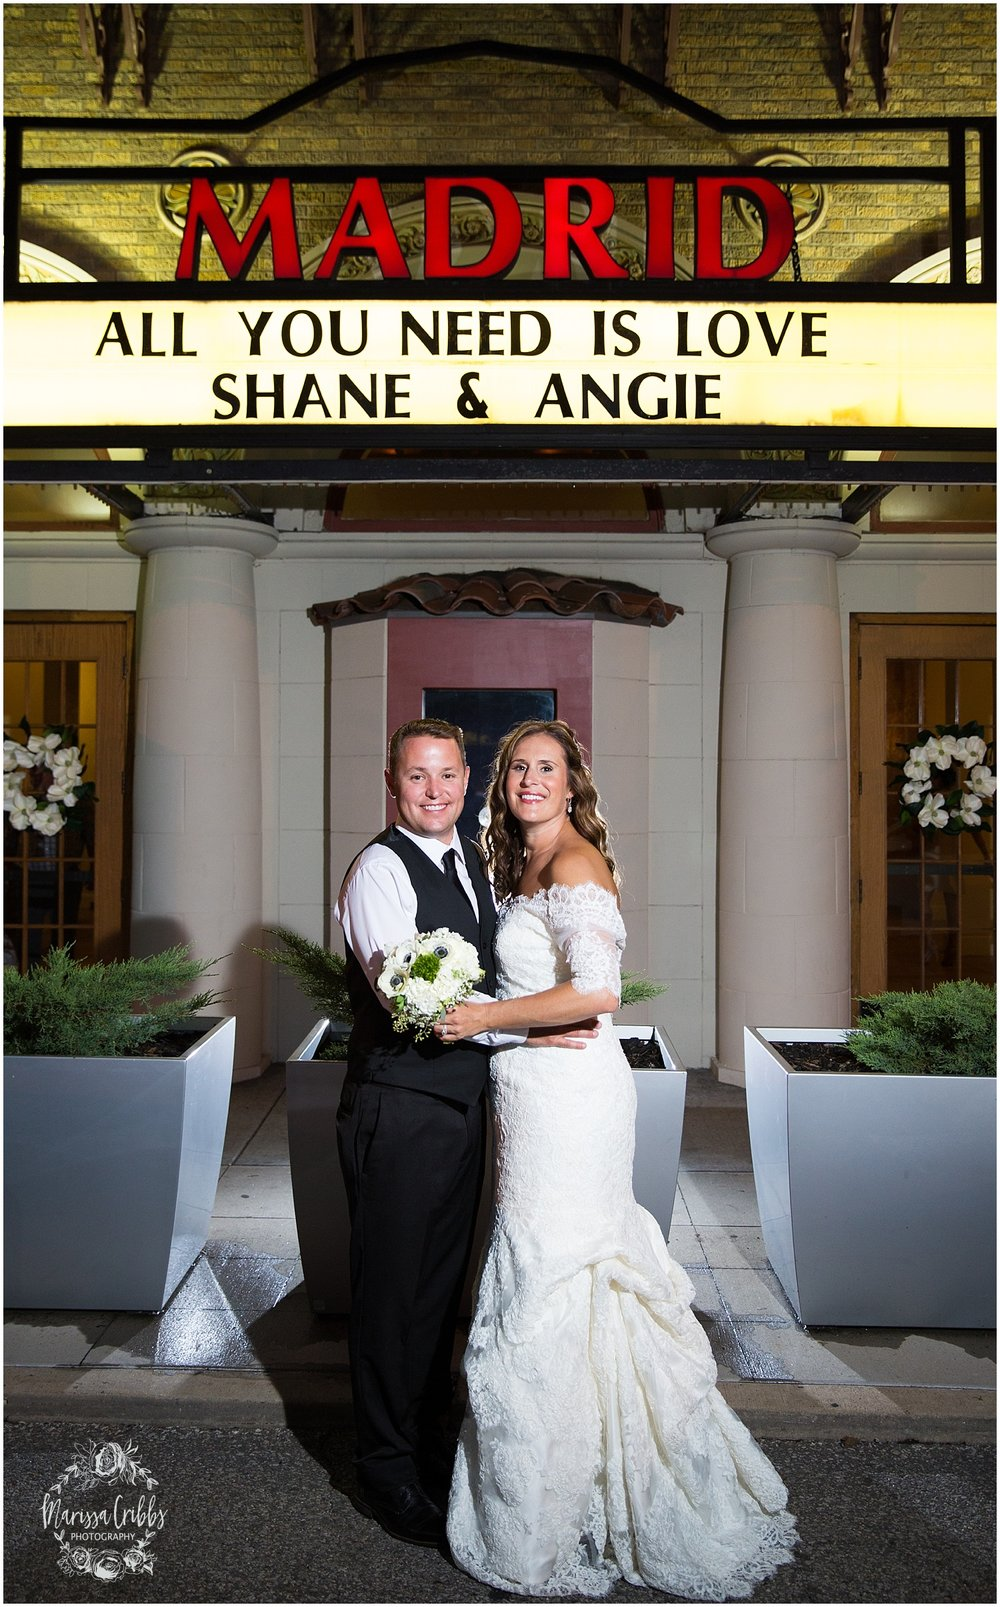 Madrid Theatre Wedding | Union Station | Liberty Memorial | KC Wedding Photographer | Marissa Cribbs Photography_0608.jpg